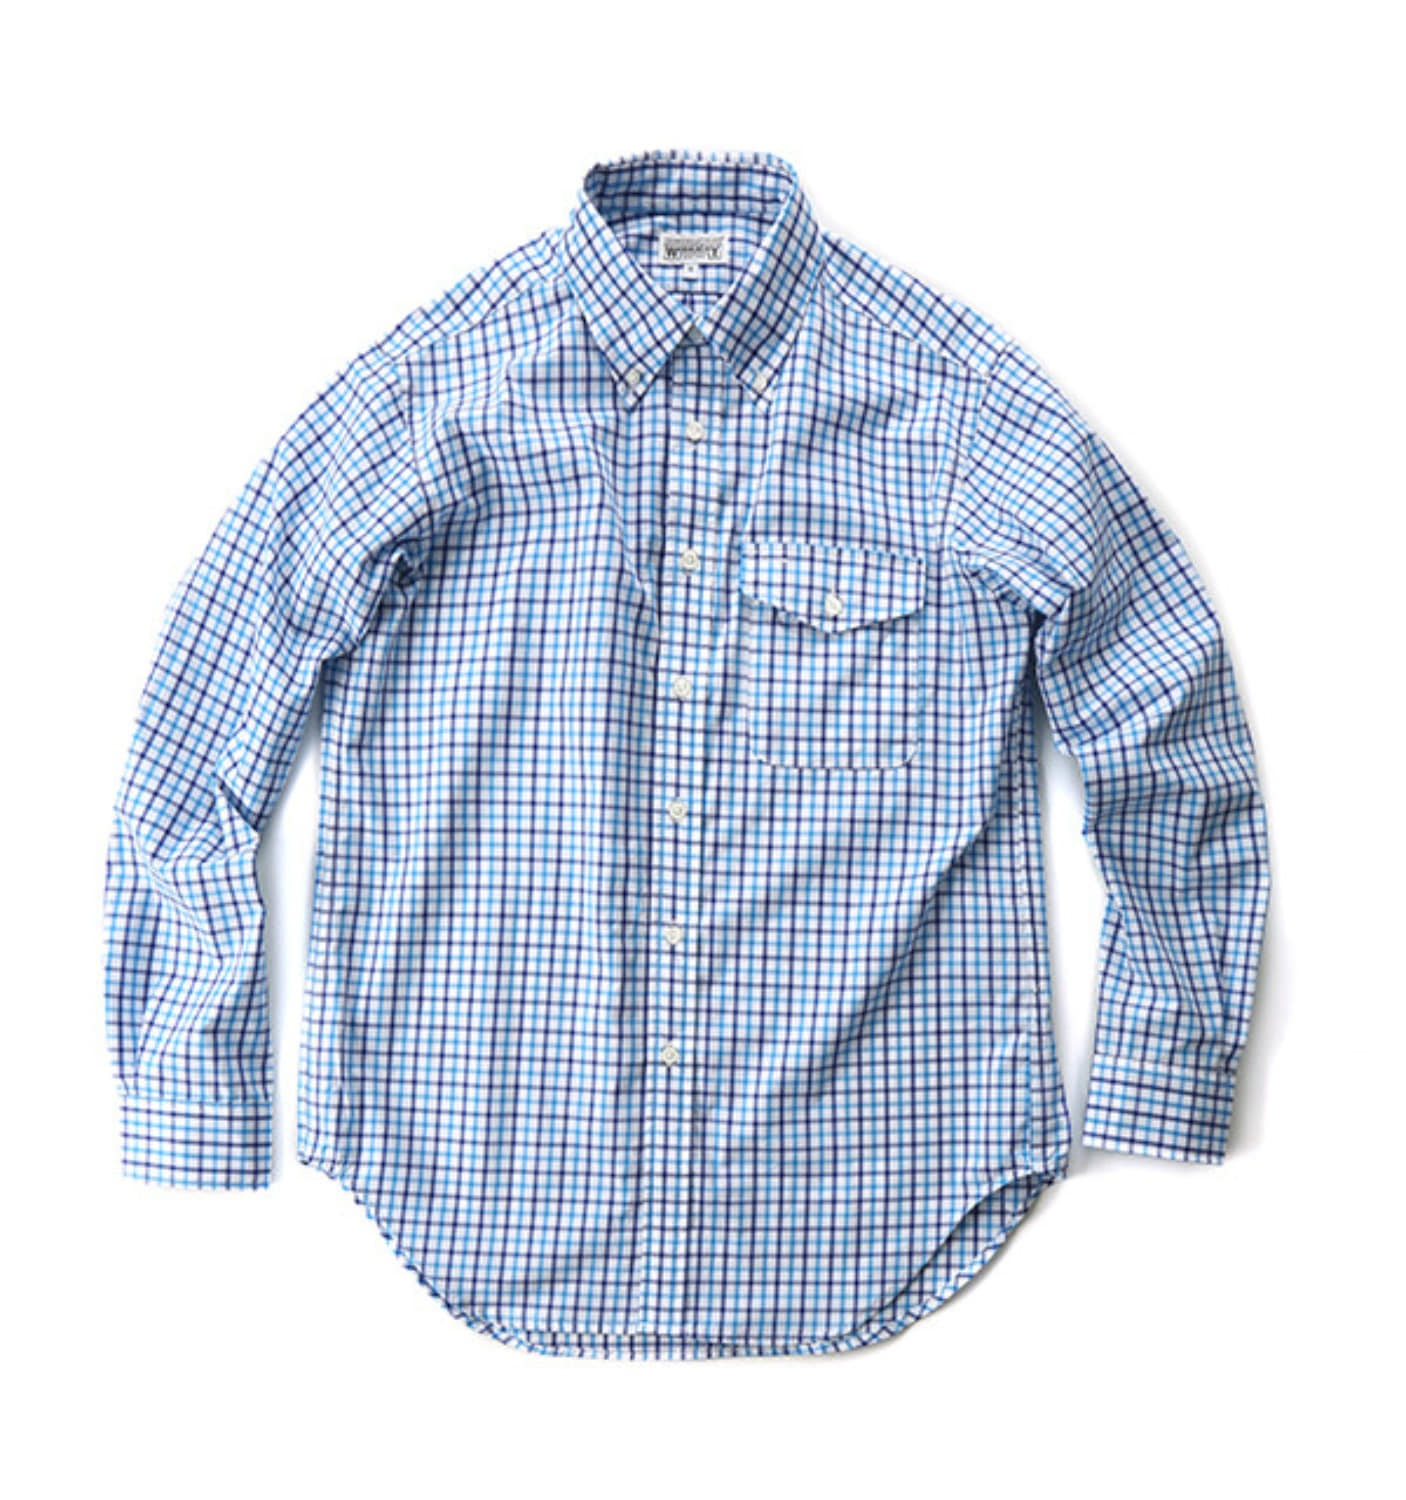 BLUE/LT.BLUE COTTON GRAPH CHECK BD SHIRT